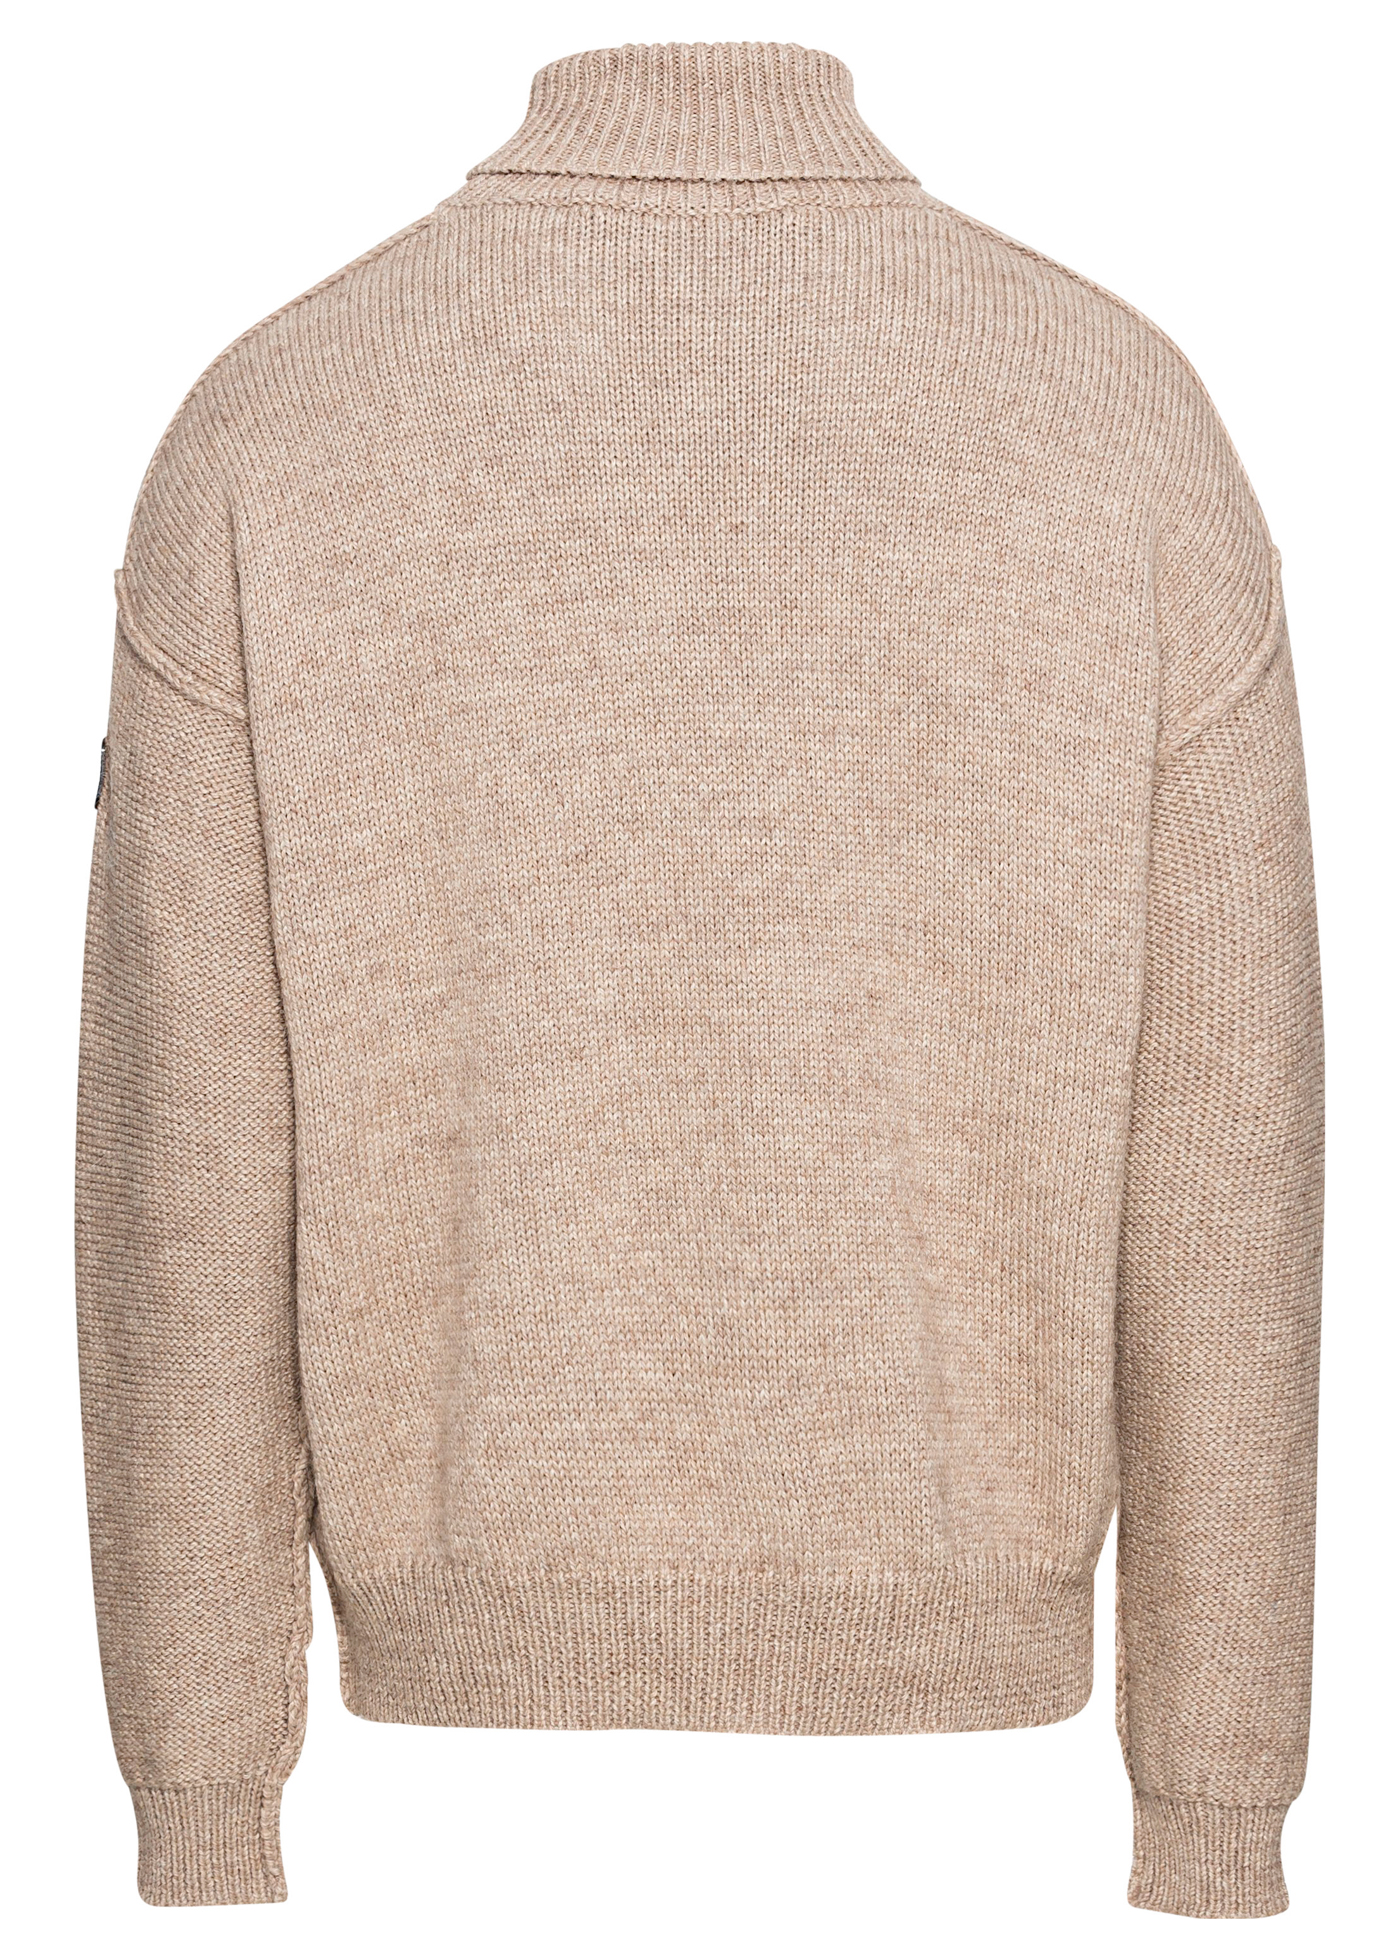 PXP TURTLE NECK image number 1